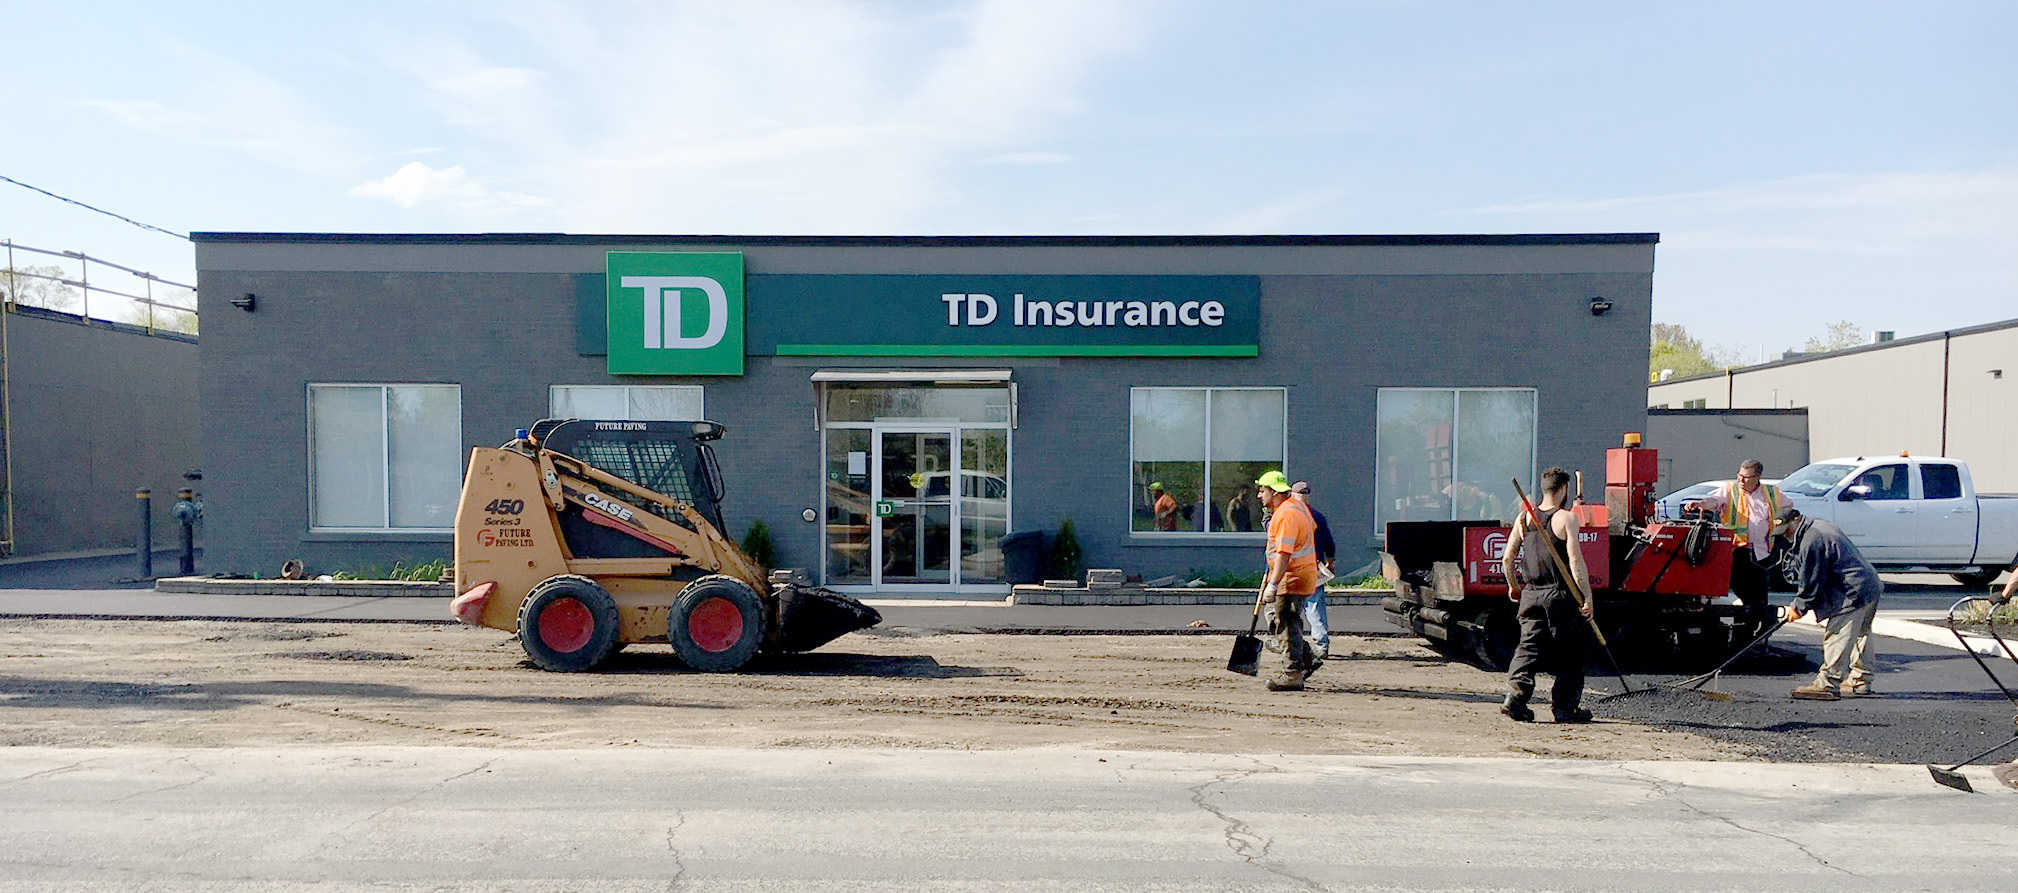 Asphalt Parking lot paving company toronto GTA Future Paving TD insurance